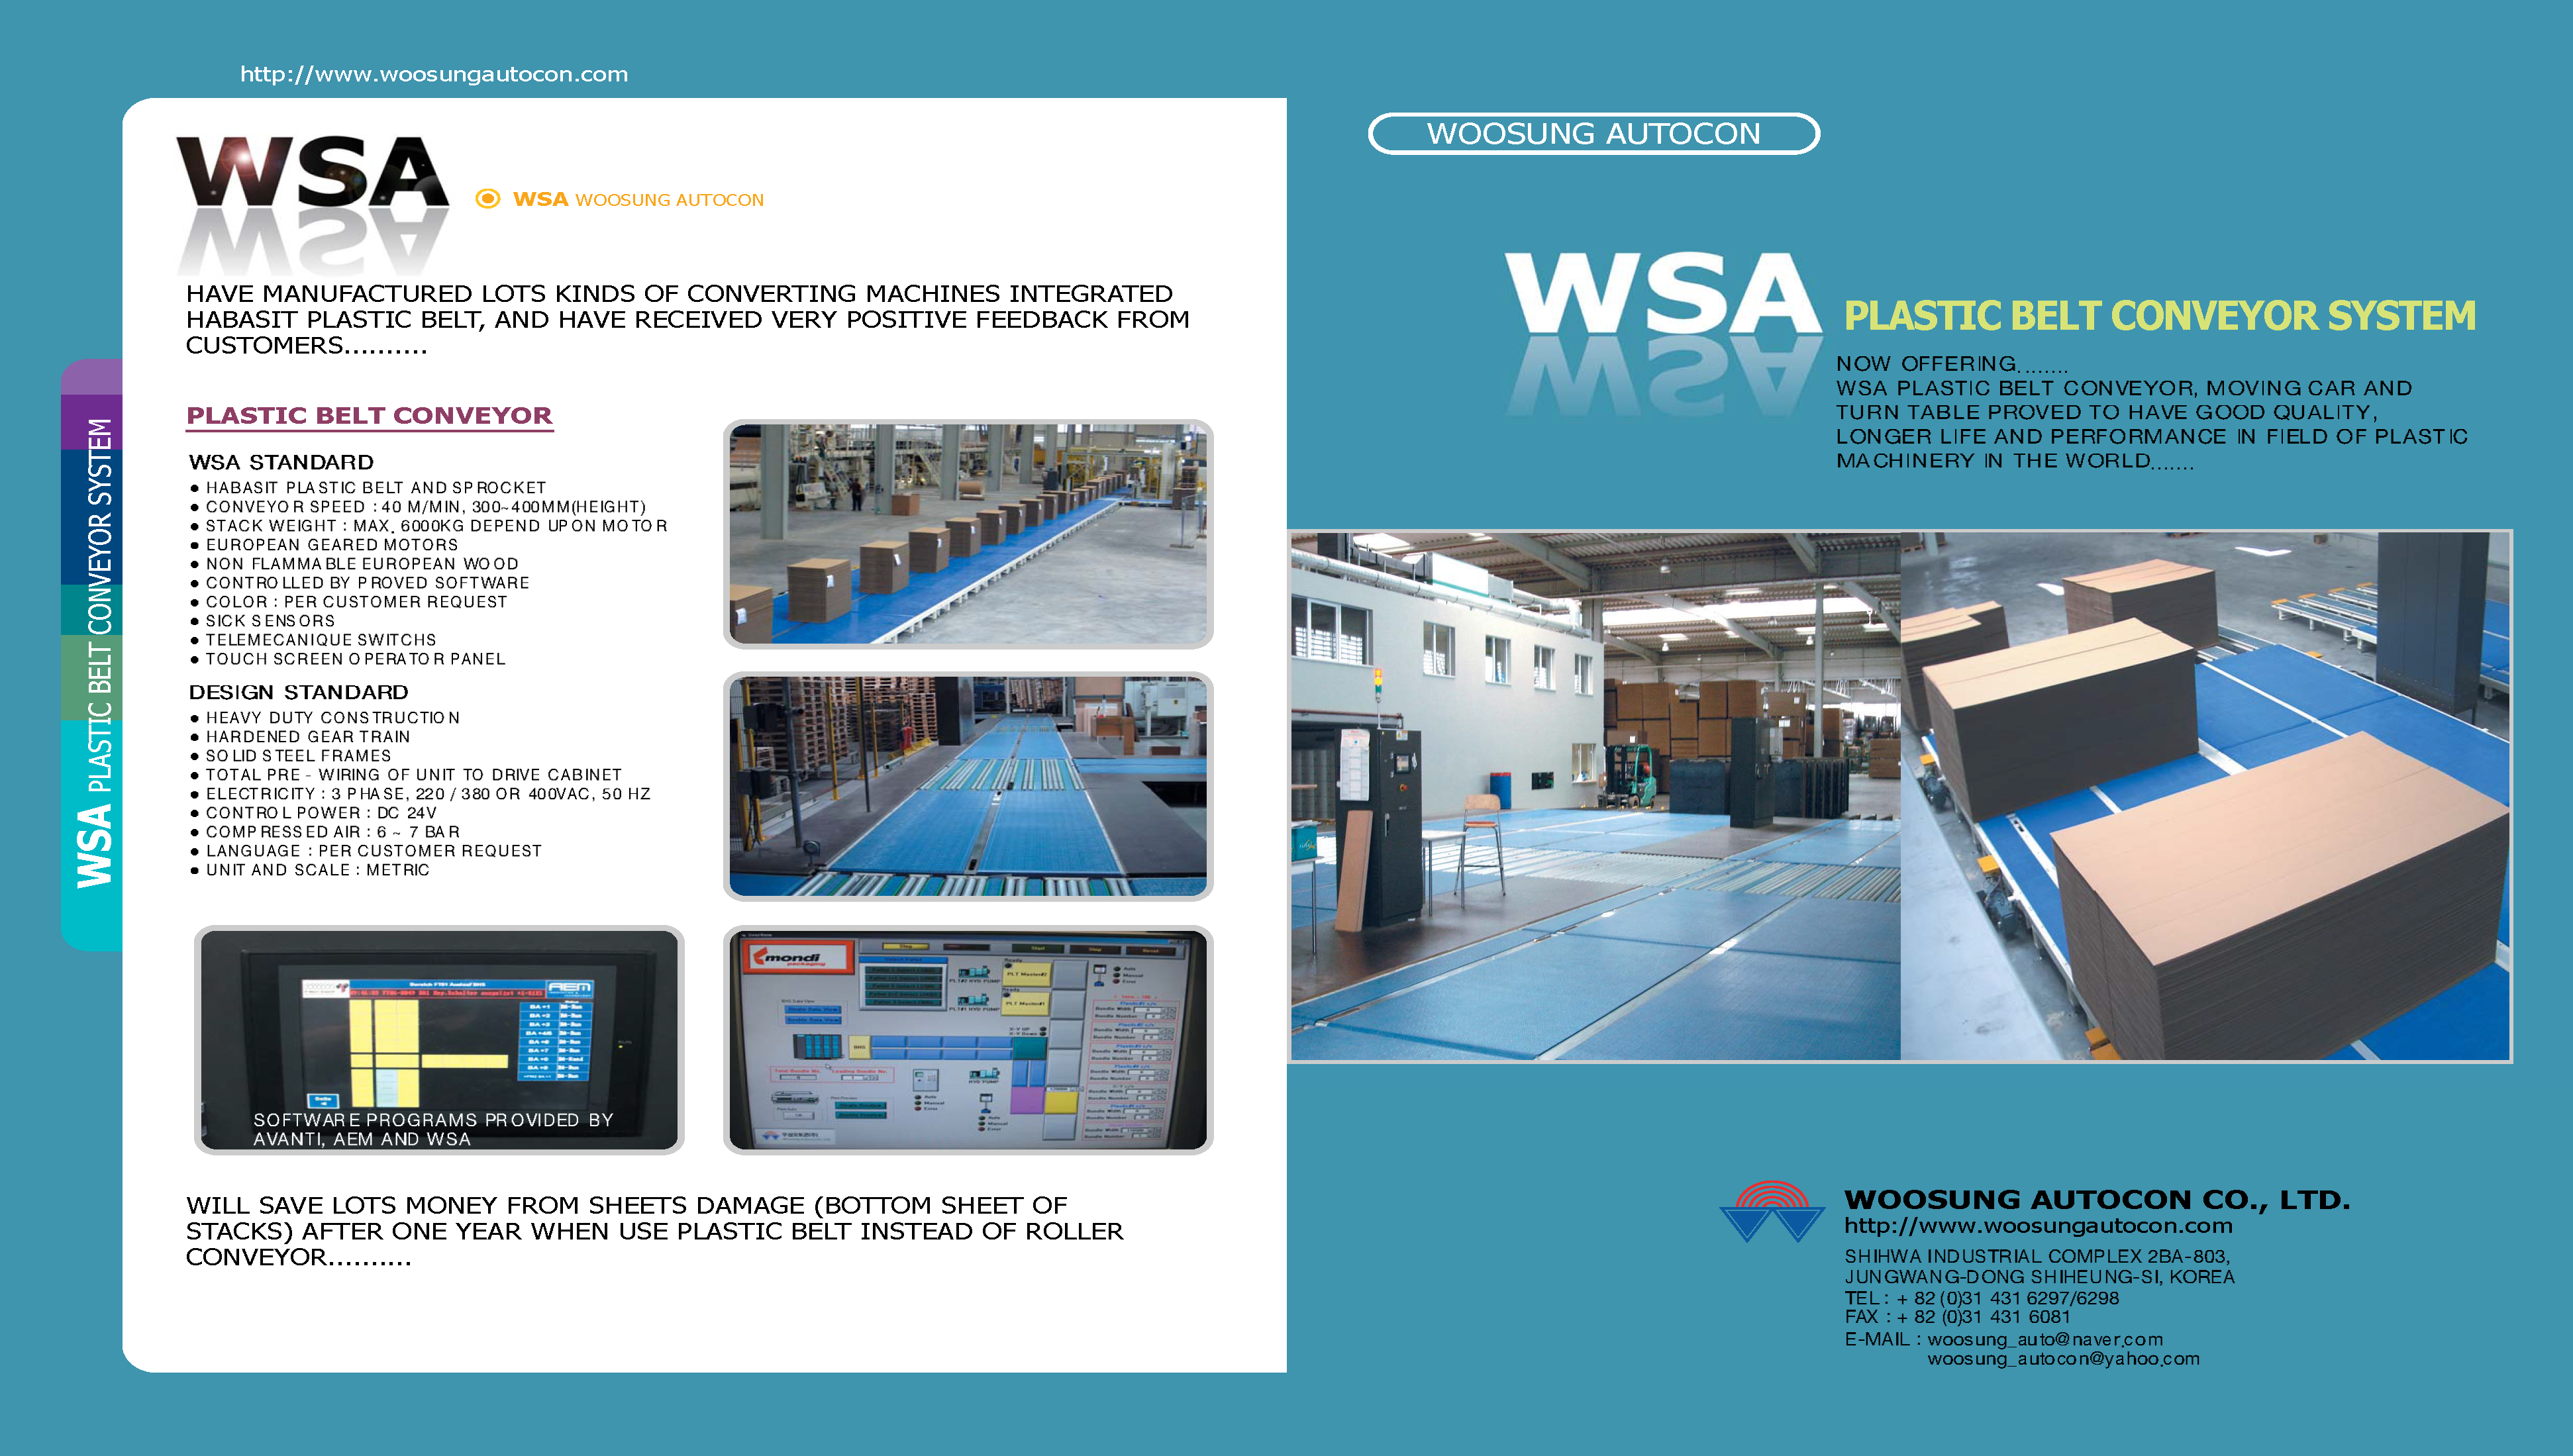 Learn more with WSA's Plastic Belt Conveyor Systems Brochure.